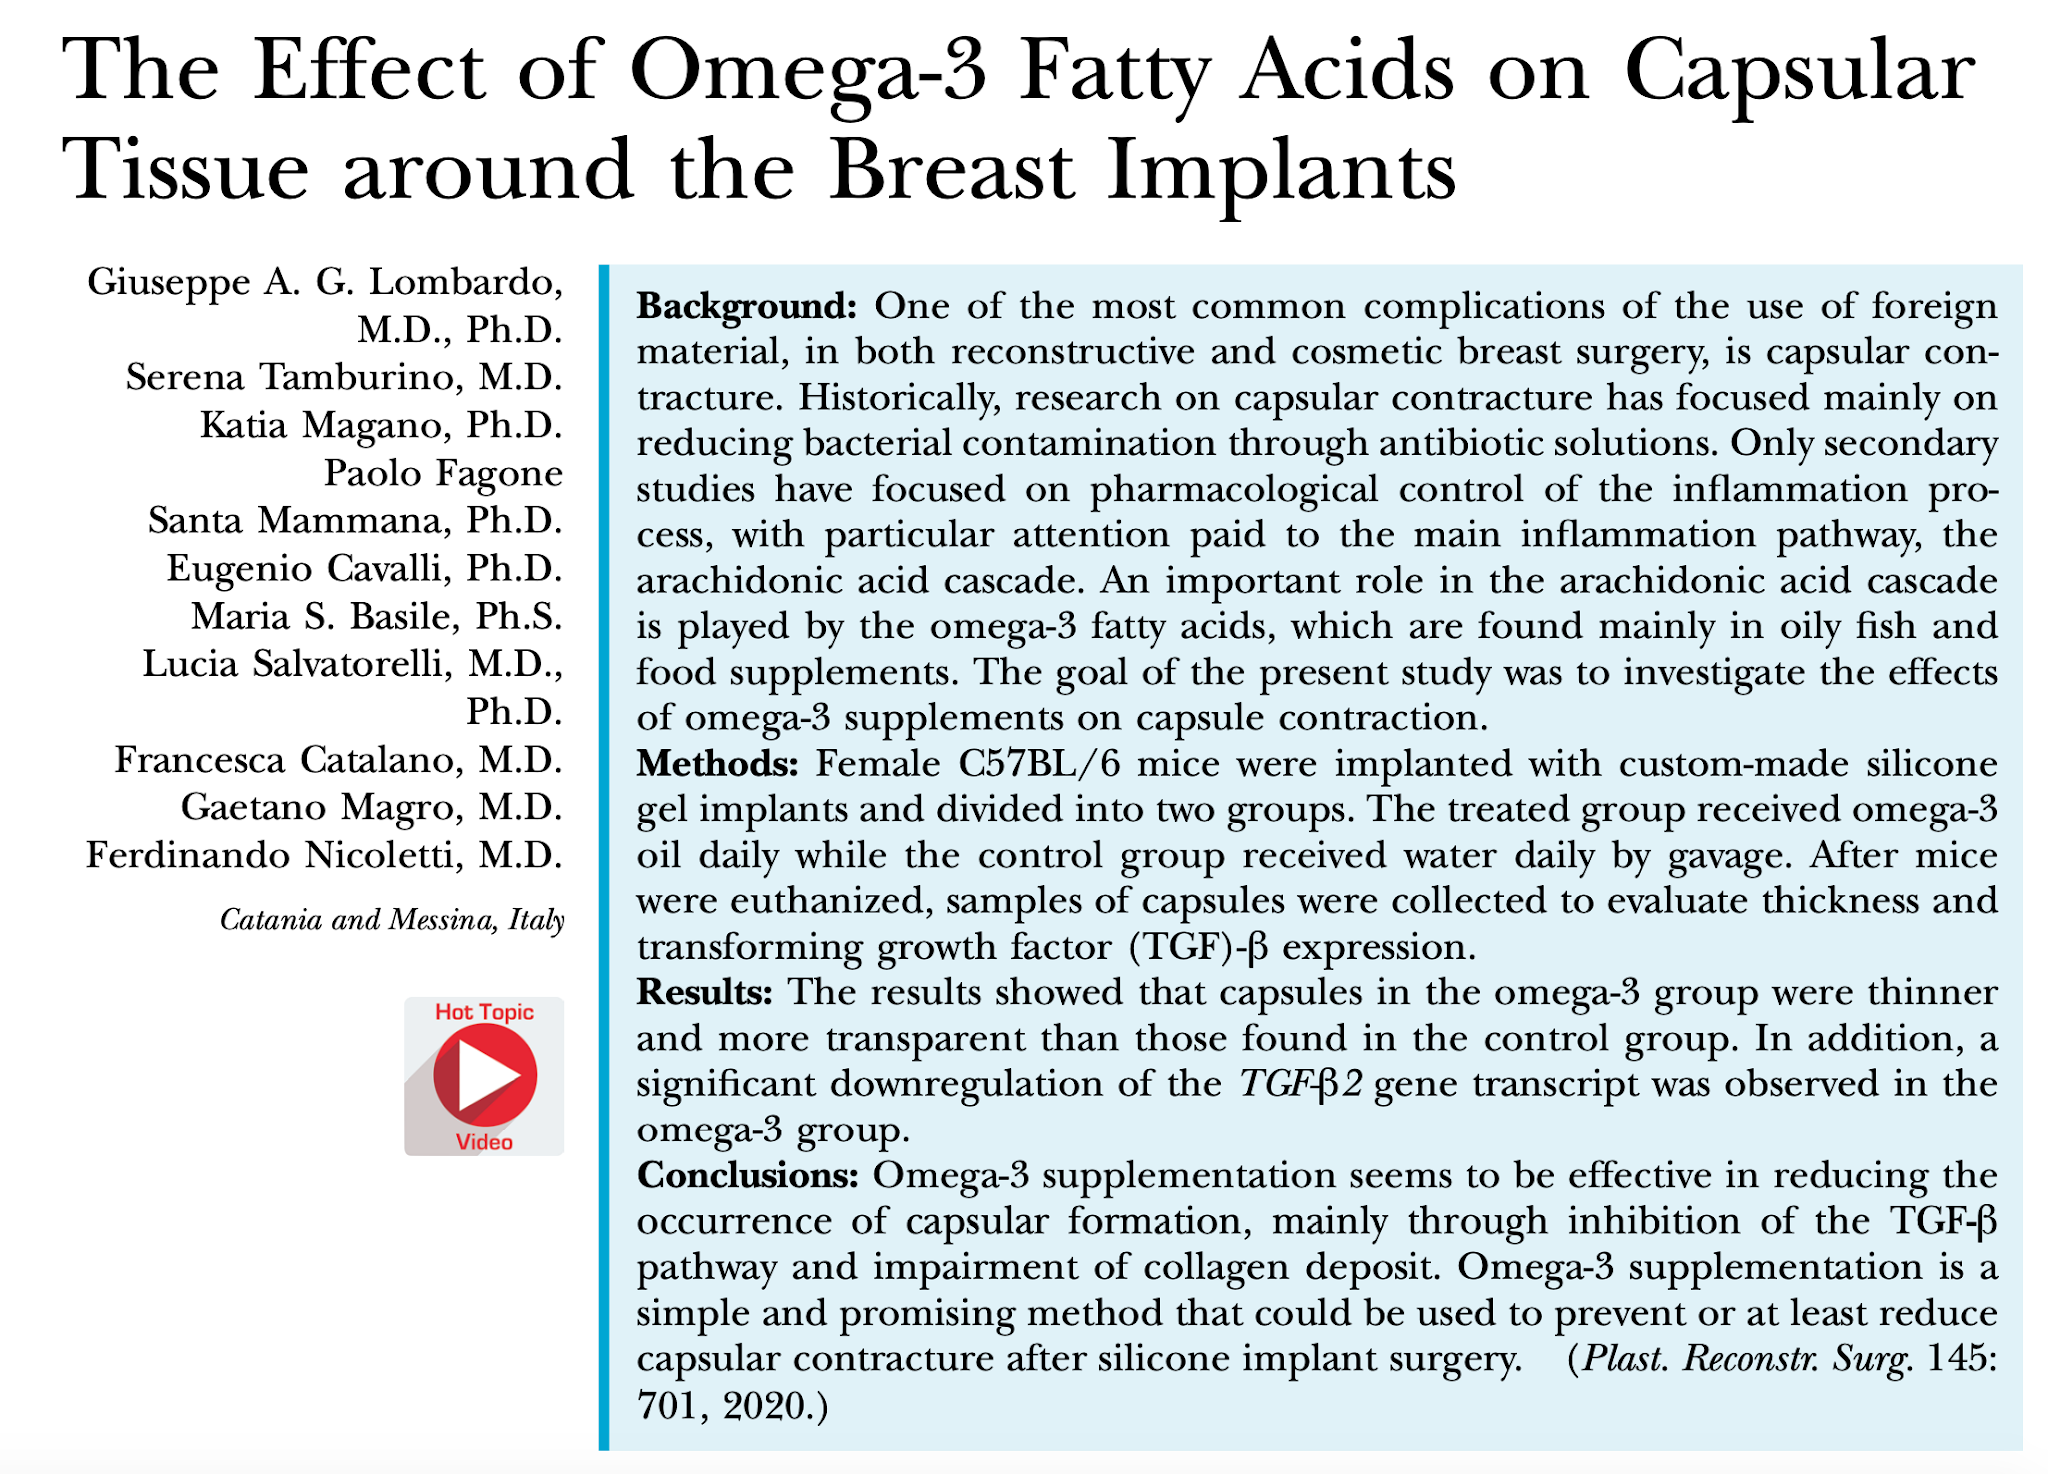 Omega-3 Fatty Acids May Prevent Breast Implant Complications, Like Capsular Contracture